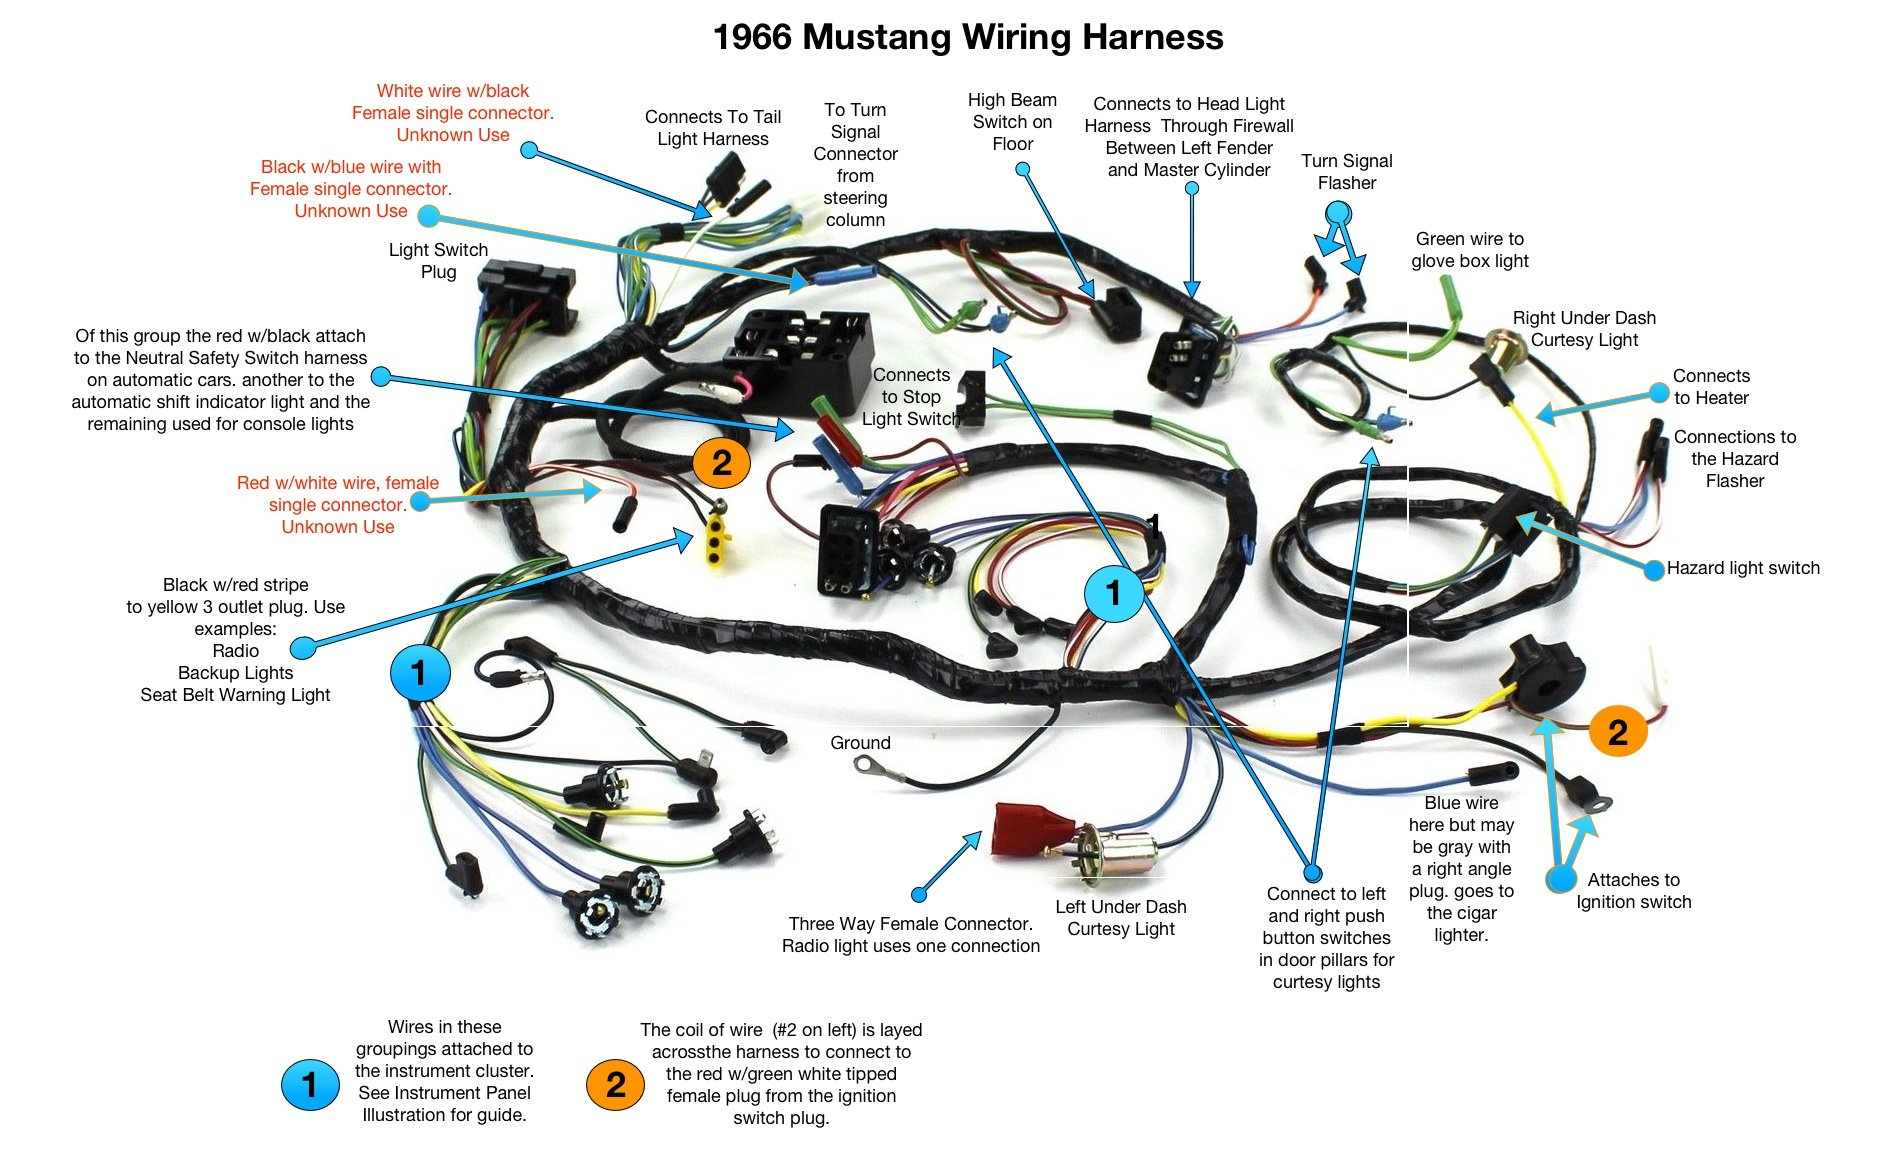 507585d1458686767 66 wiring harness diagram 66 mustang wiring harness harness wiring diagram jeep wrangler wiring harness diagram \u2022 free ford wiring harness connectors at n-0.co